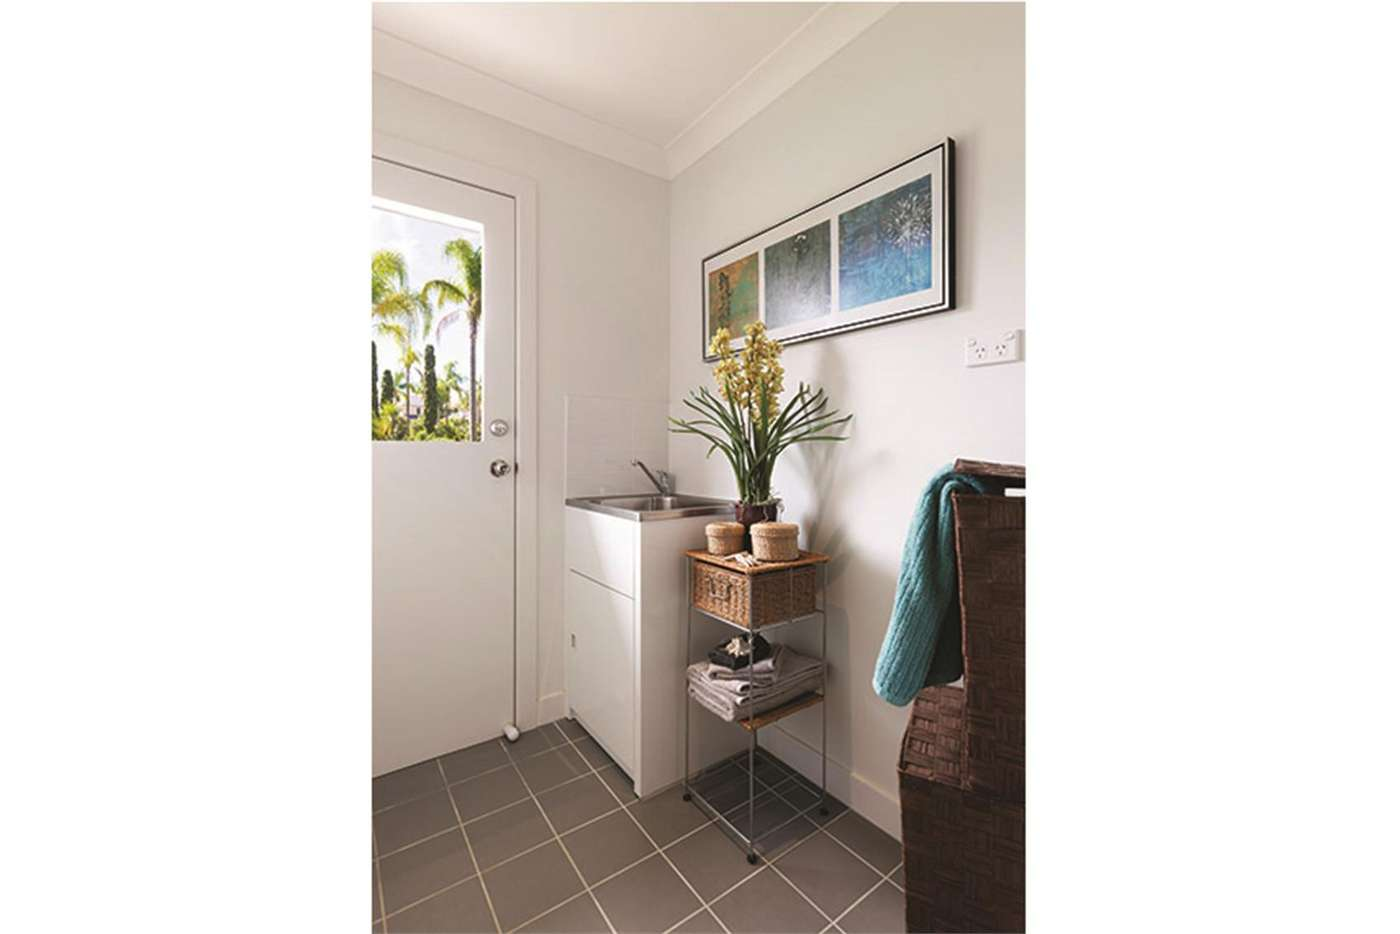 Sixth view of Homely house listing, Lot 36 Grey Box Road, Tahmoor NSW 2573